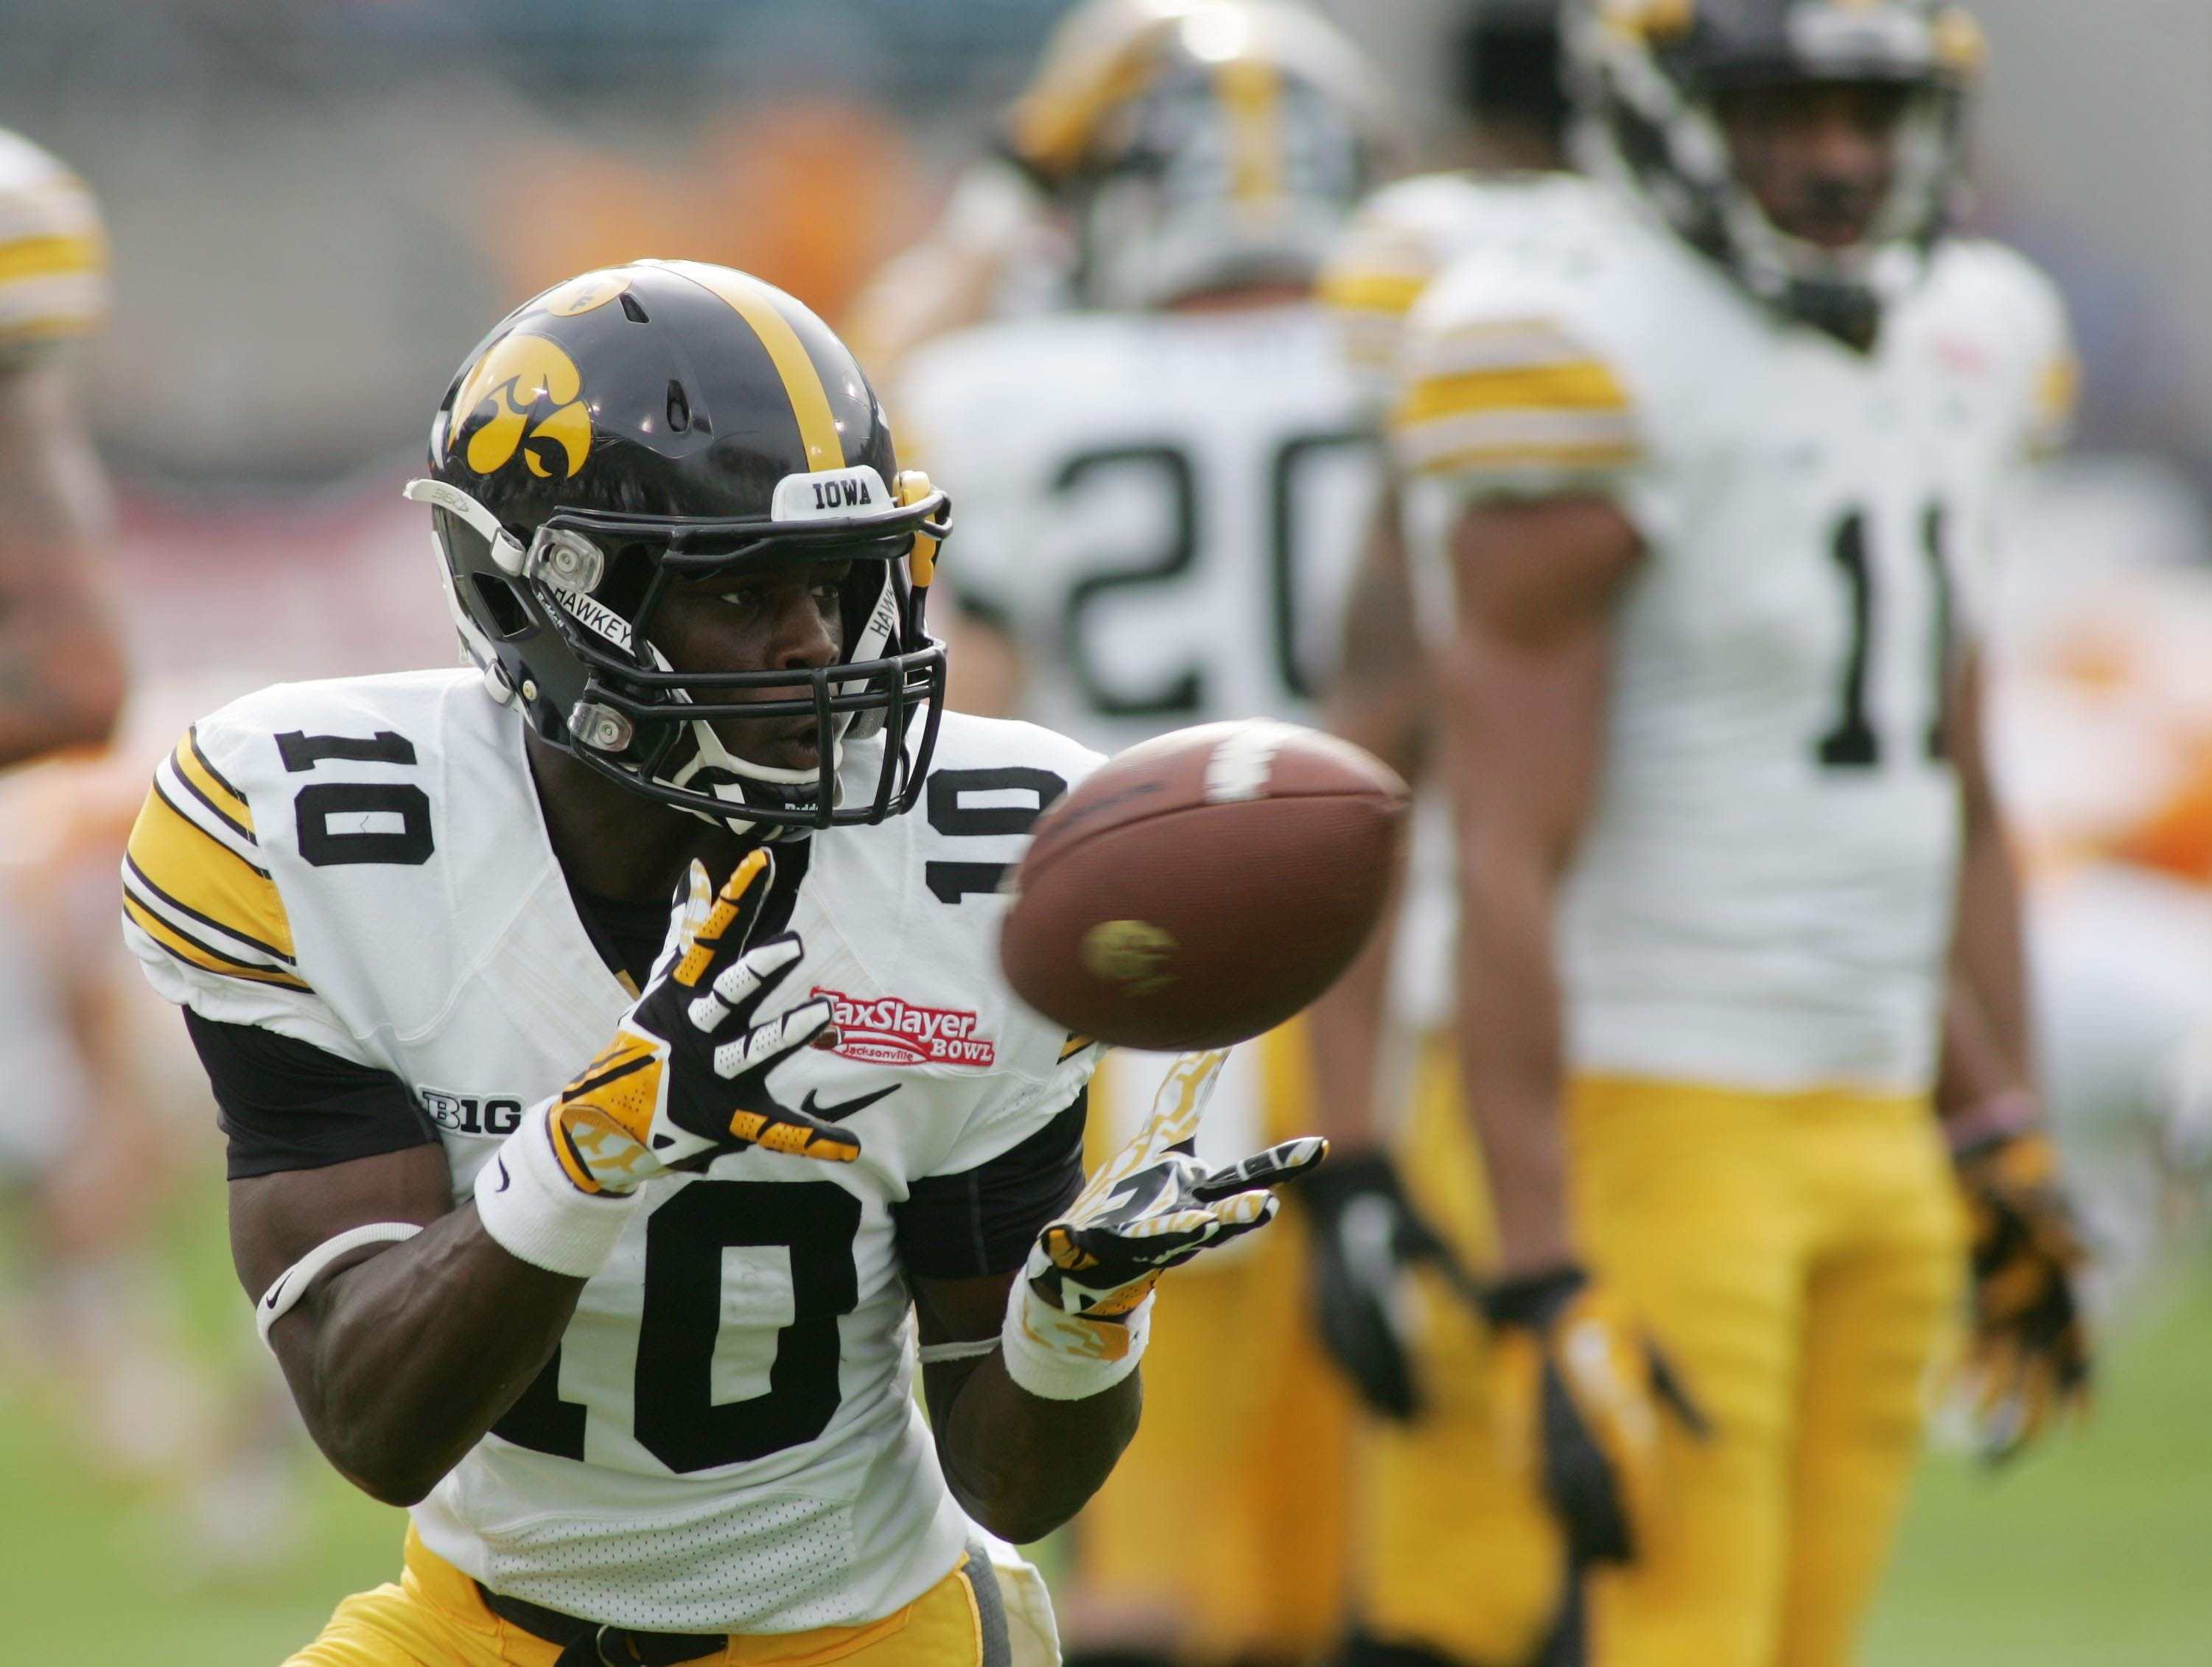 Jan 2, 2015; Jacksonville, FL, USA; Iowa Hawkeyes running back Jonathan Parker (10) catches a pass before the start of their game against theTennessee Volunteers in  the 2015 TaxSlayer Bowl at EverBank Field. Mandatory Credit: Phil Sears-USA TODAY Sports